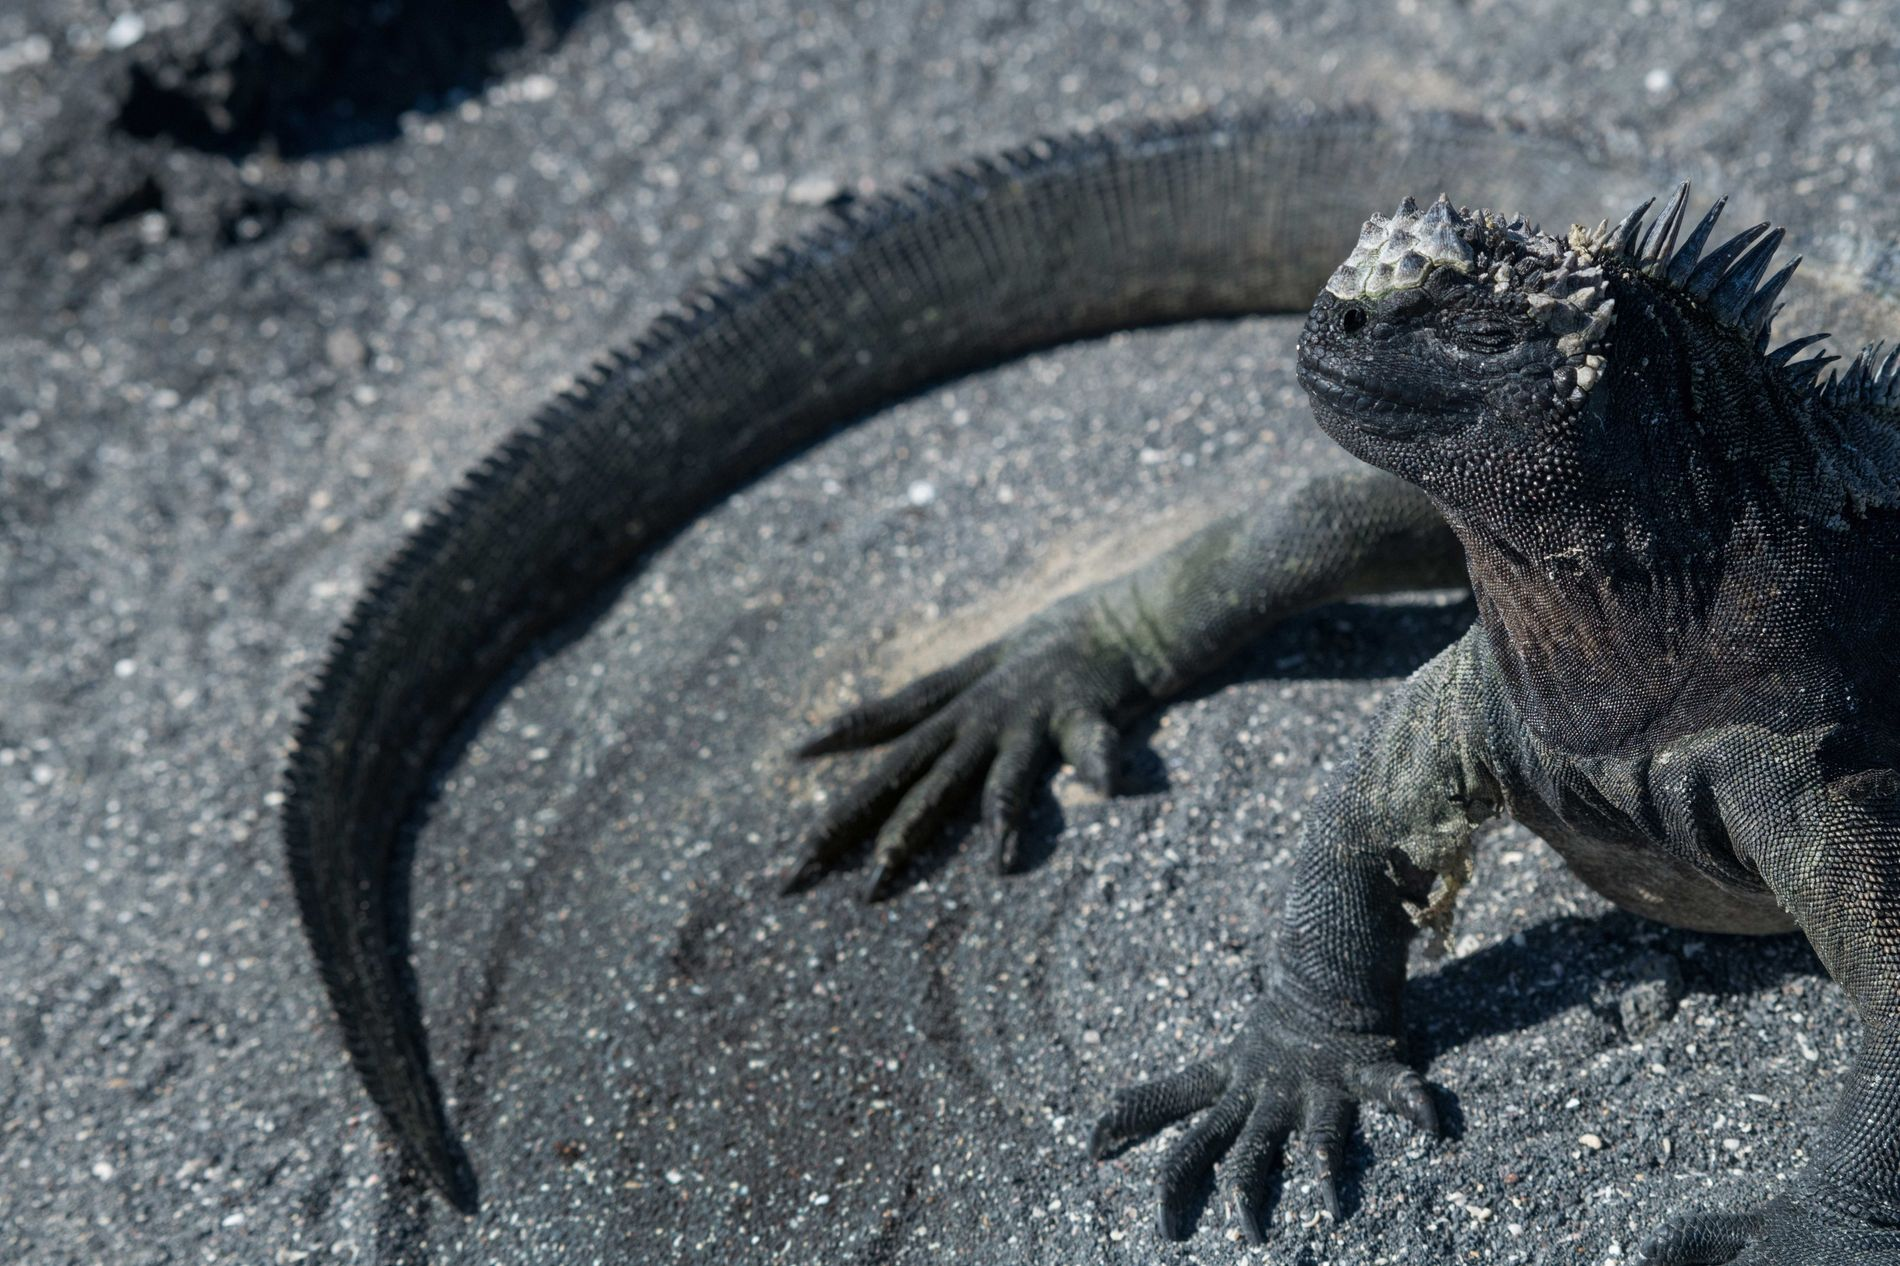 Residents of the Galápagos Islands are learning new ways to co-exist alongside the islands' rare and ...